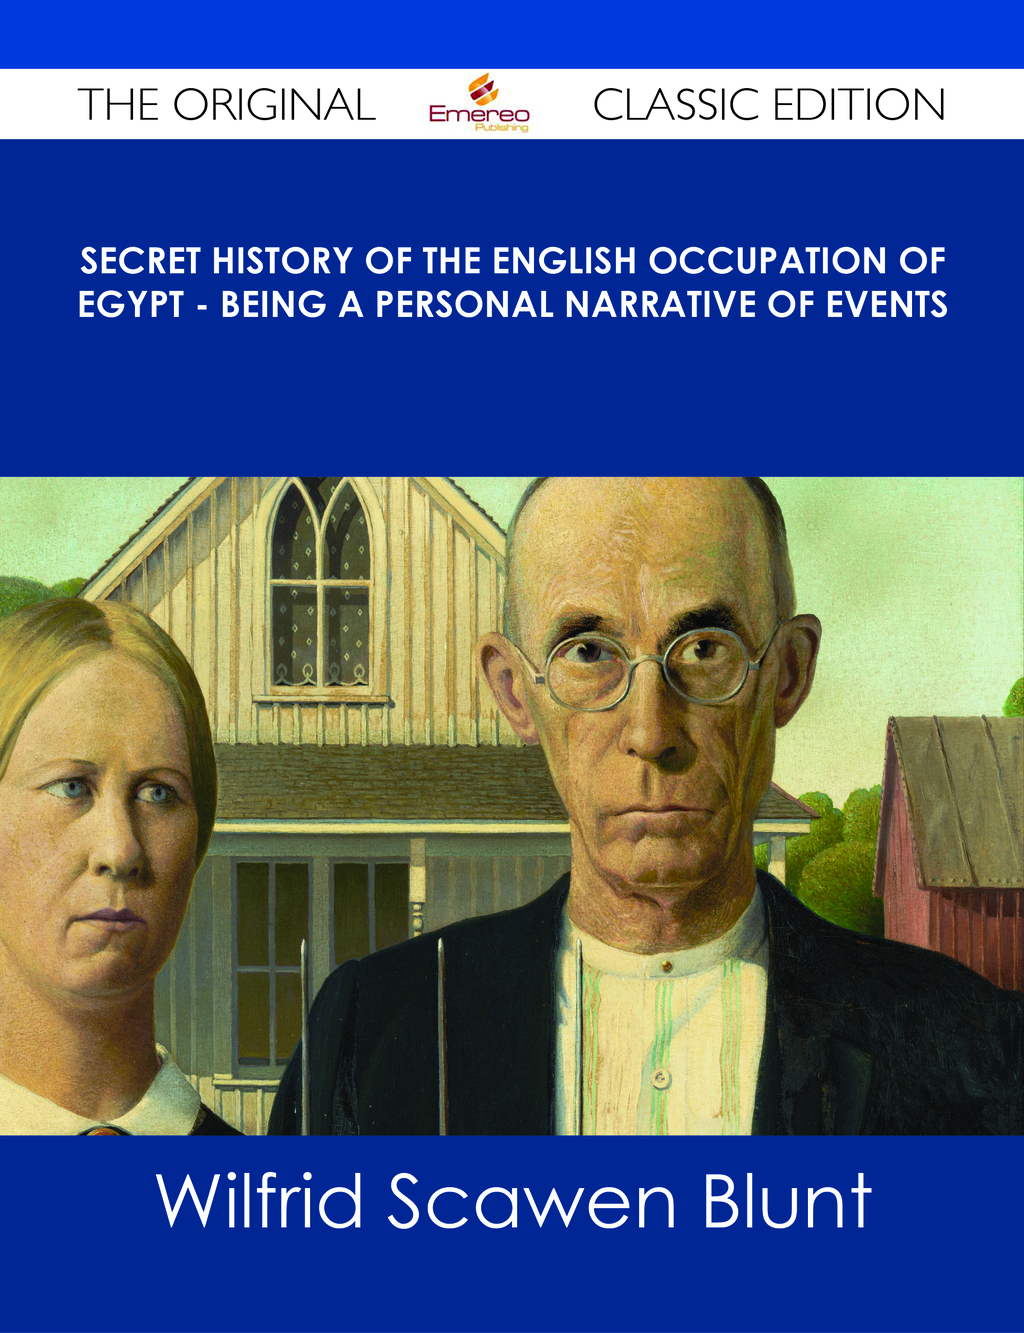 Secret History of the English Occupation of Egypt - Being a Personal Narrative of Events - The Original Classic Edition